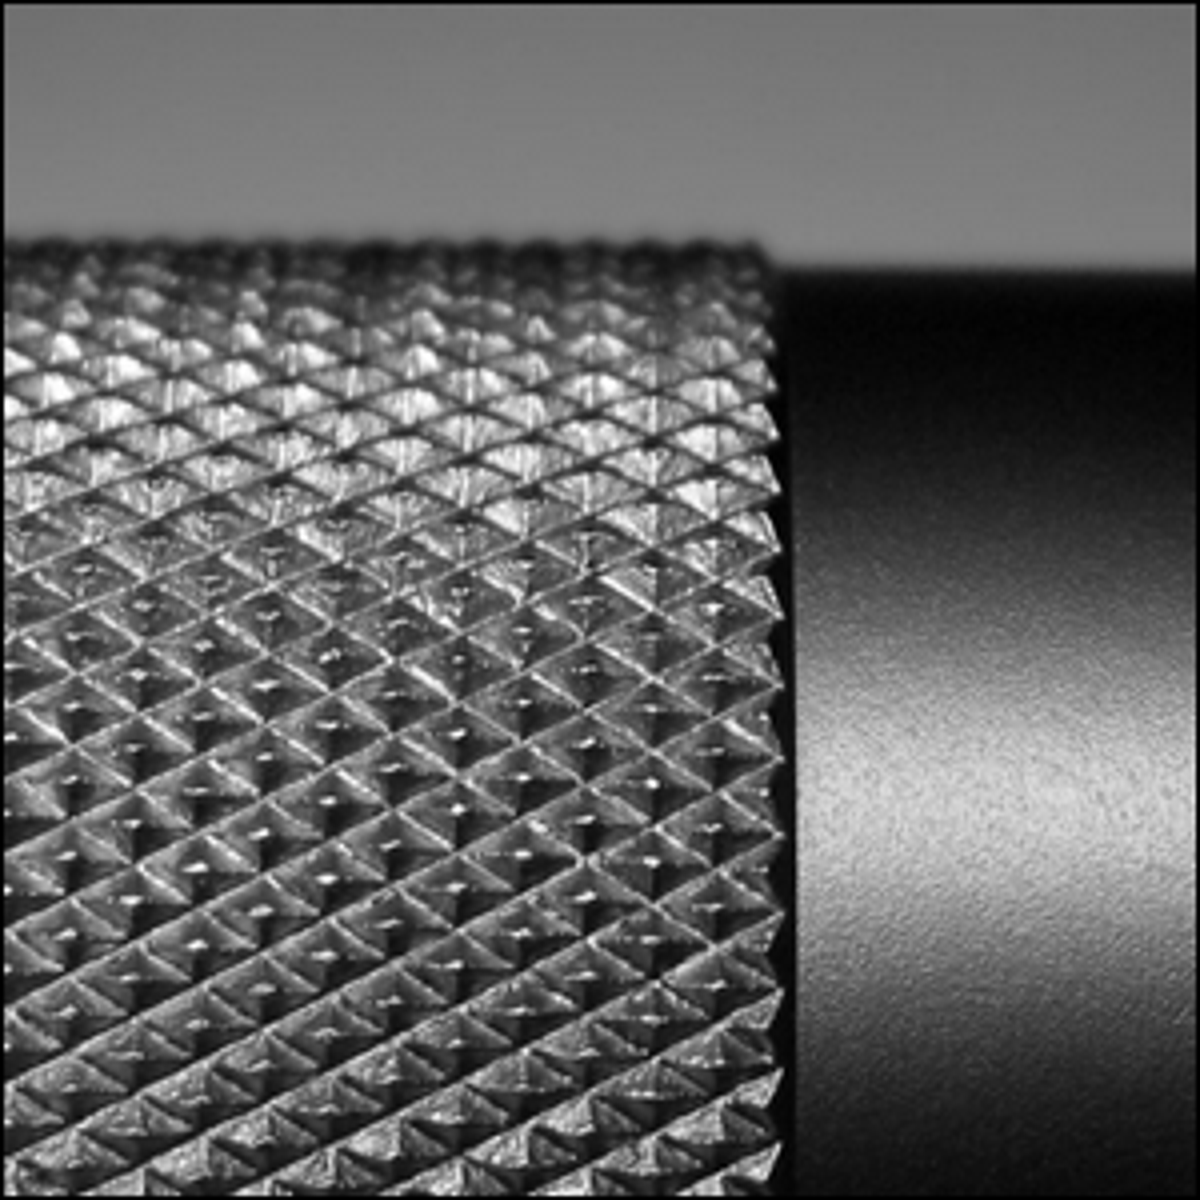 A close-up photo of diamond-pattern knurling on a cylindrical piece of metal.